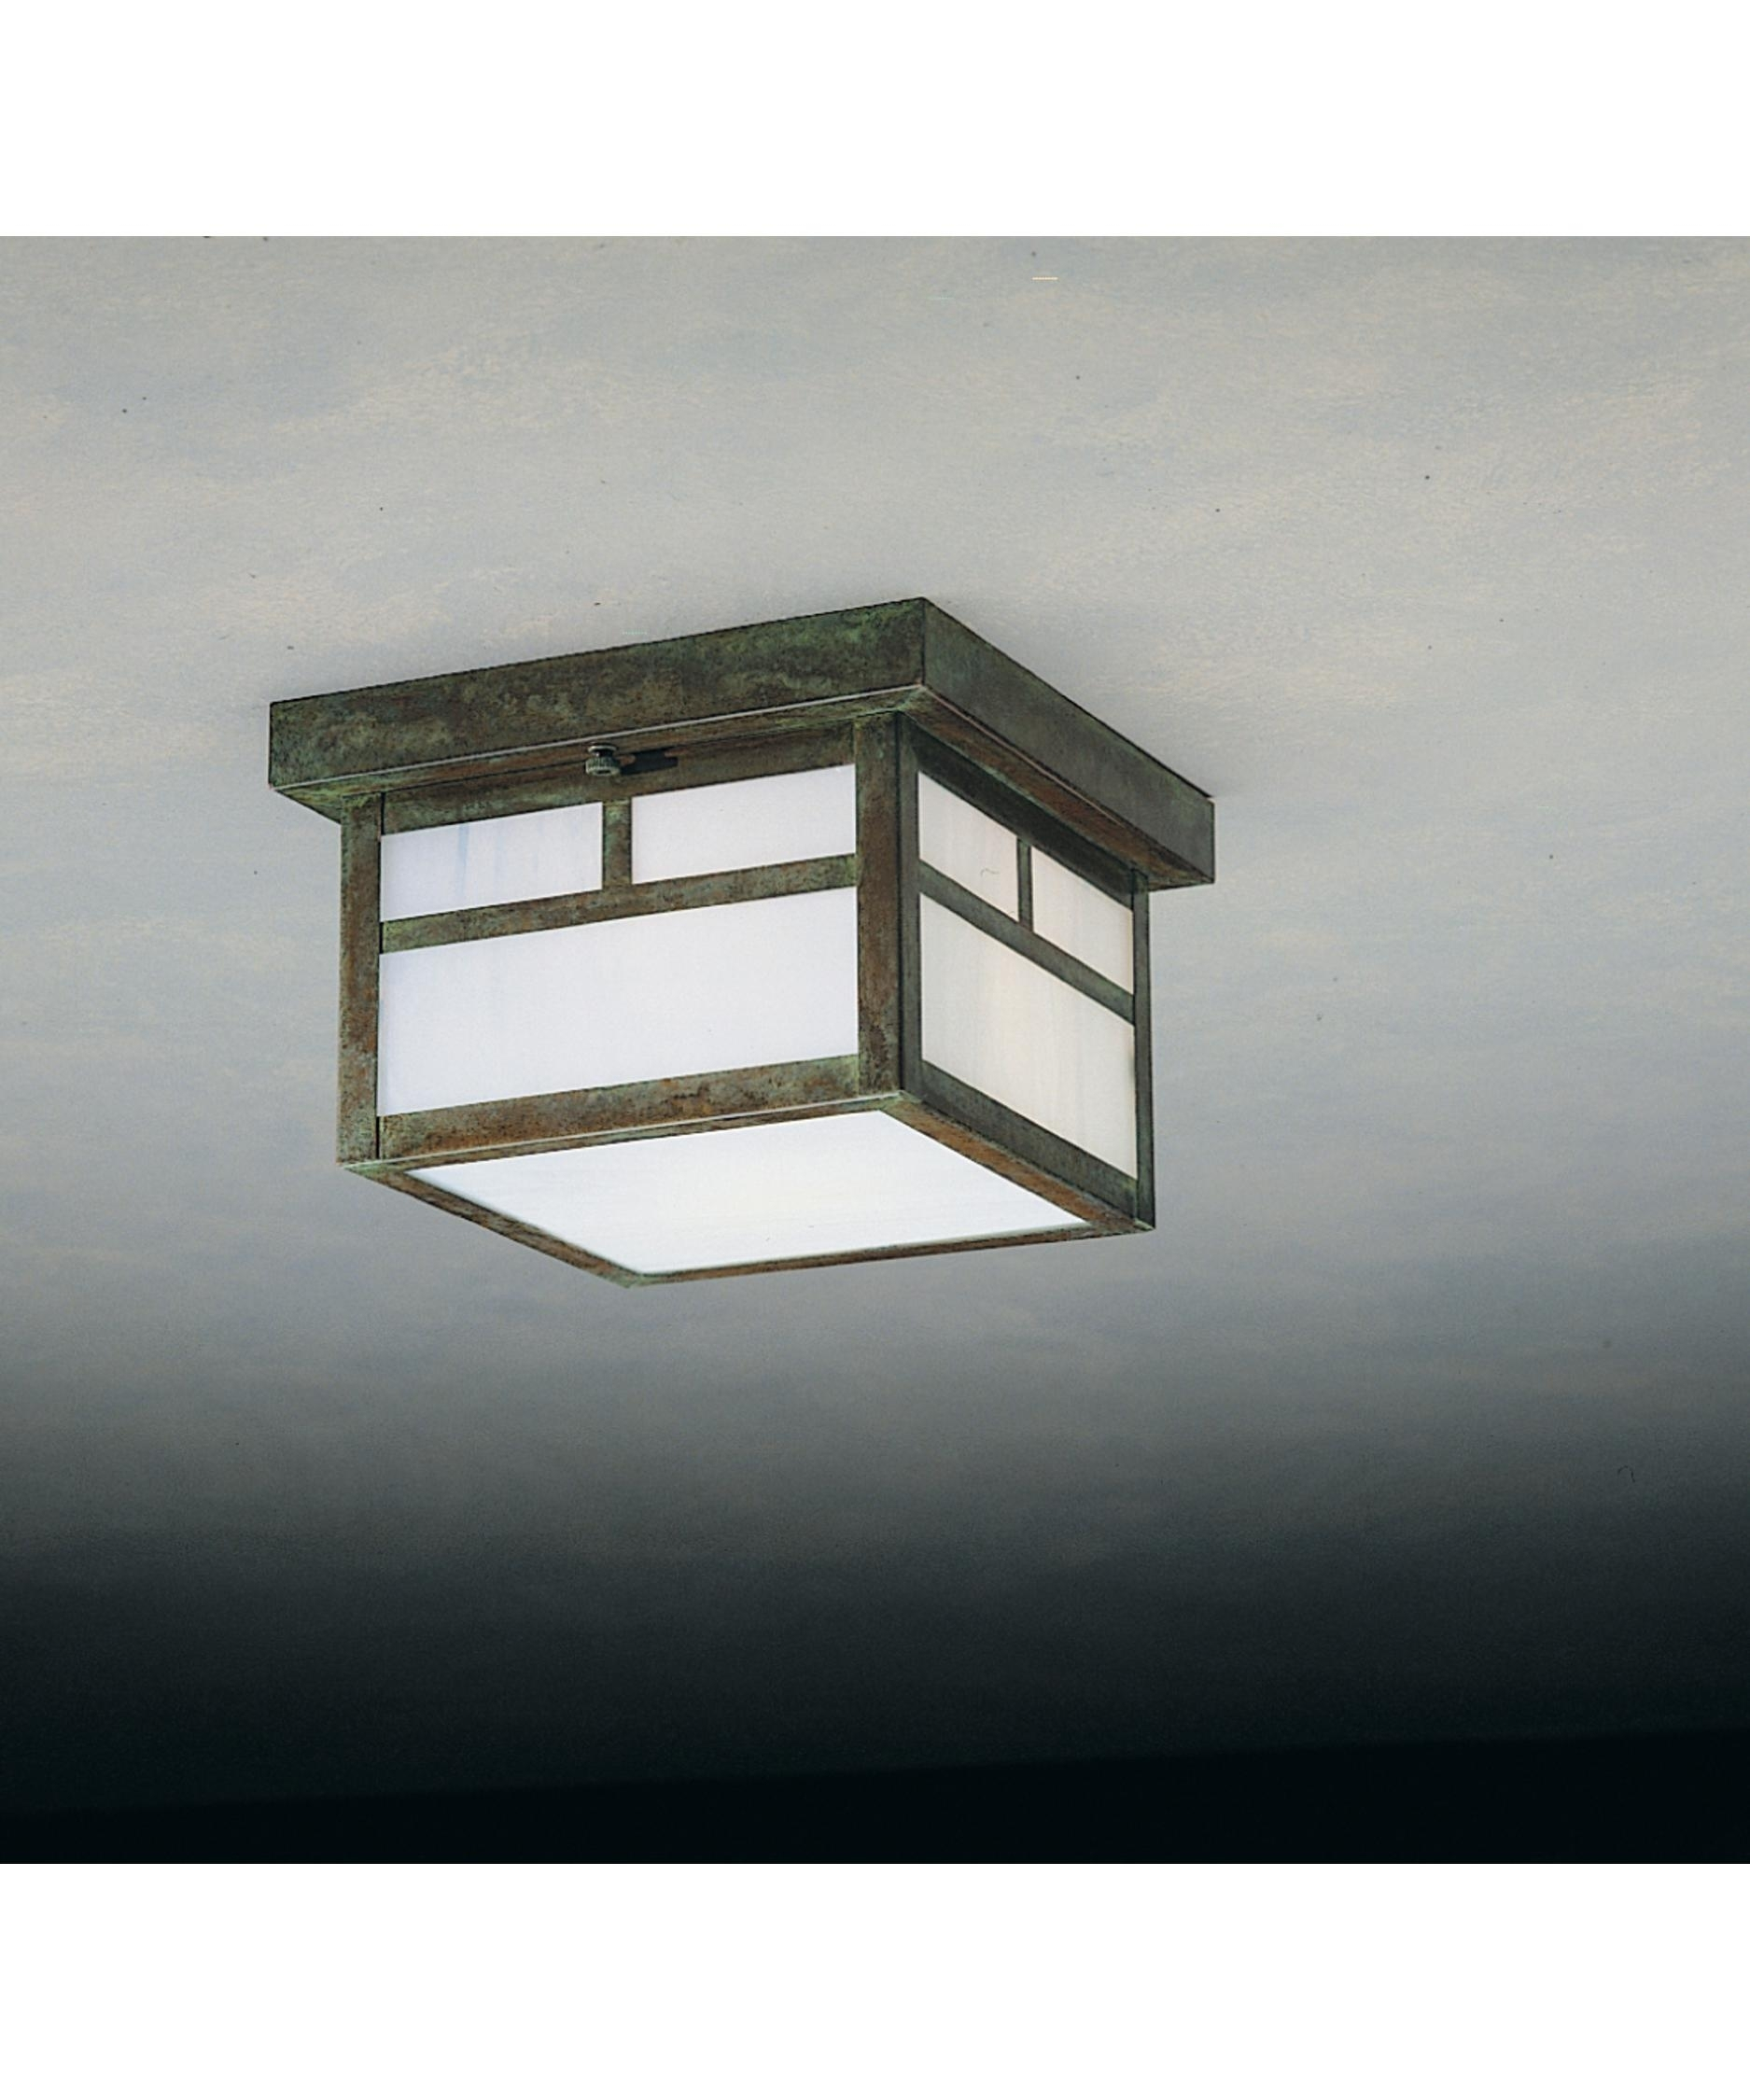 Decoration : Outdoor Ceiling Light Fixtures Bronze Flush Mount In Mission Style Outdoor Ceiling Lights (#5 of 15)